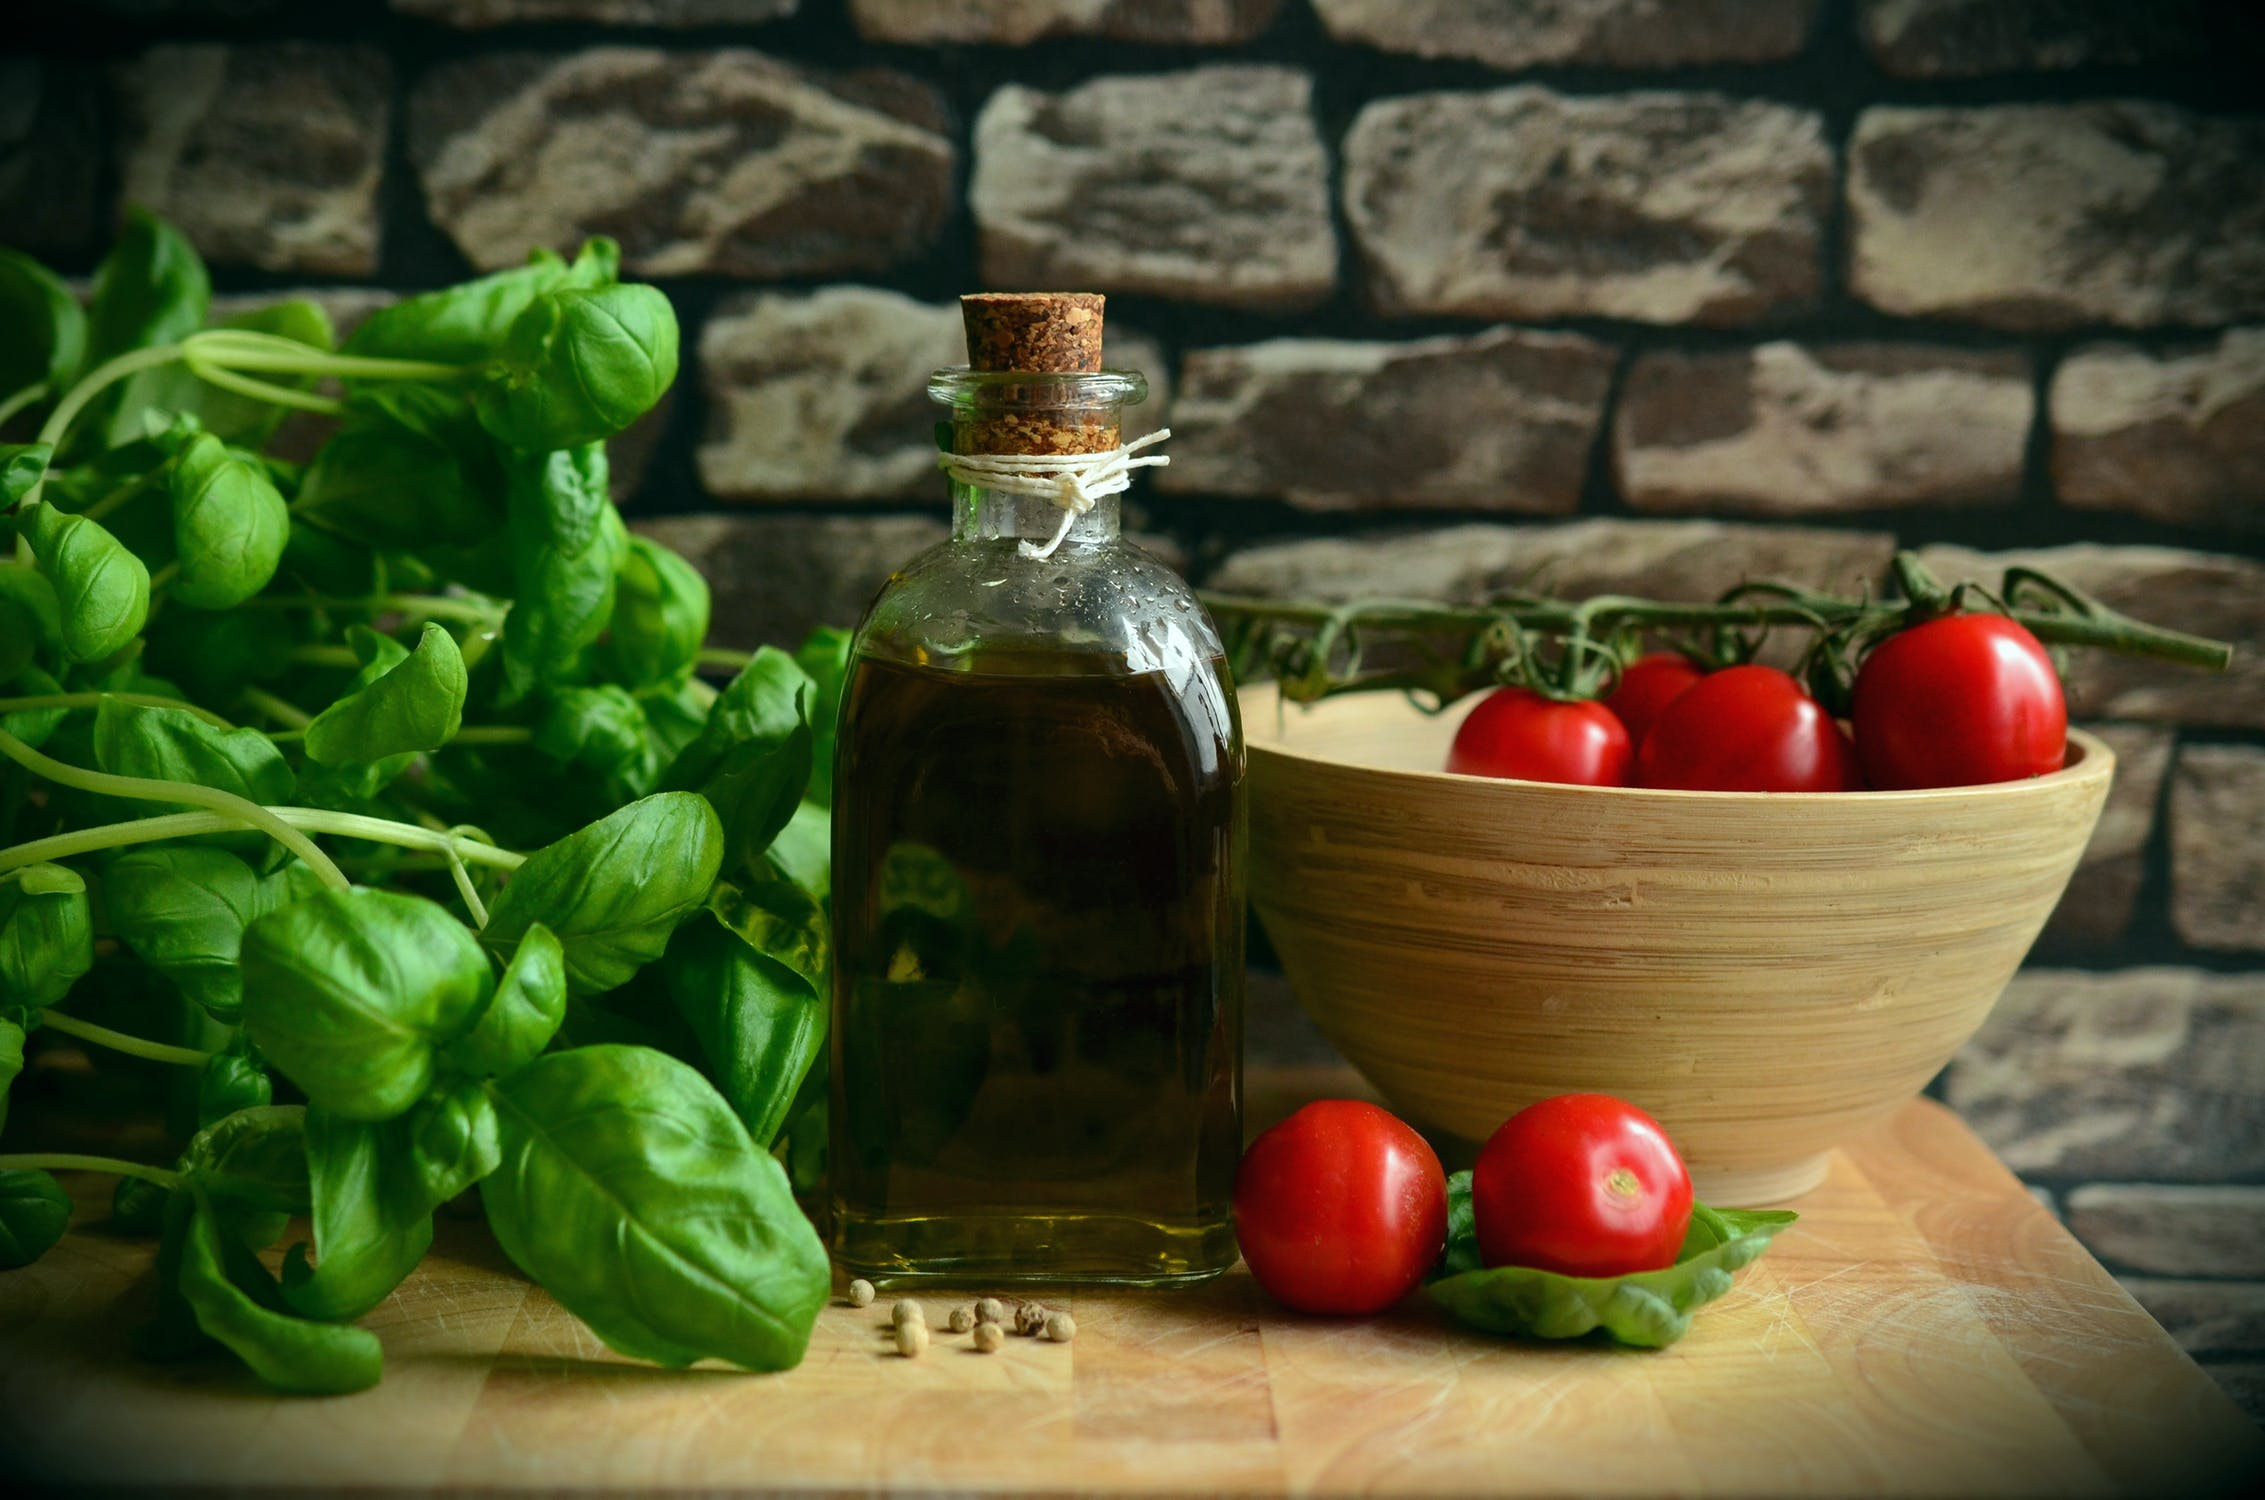 olive-oil-tomatoes-basil